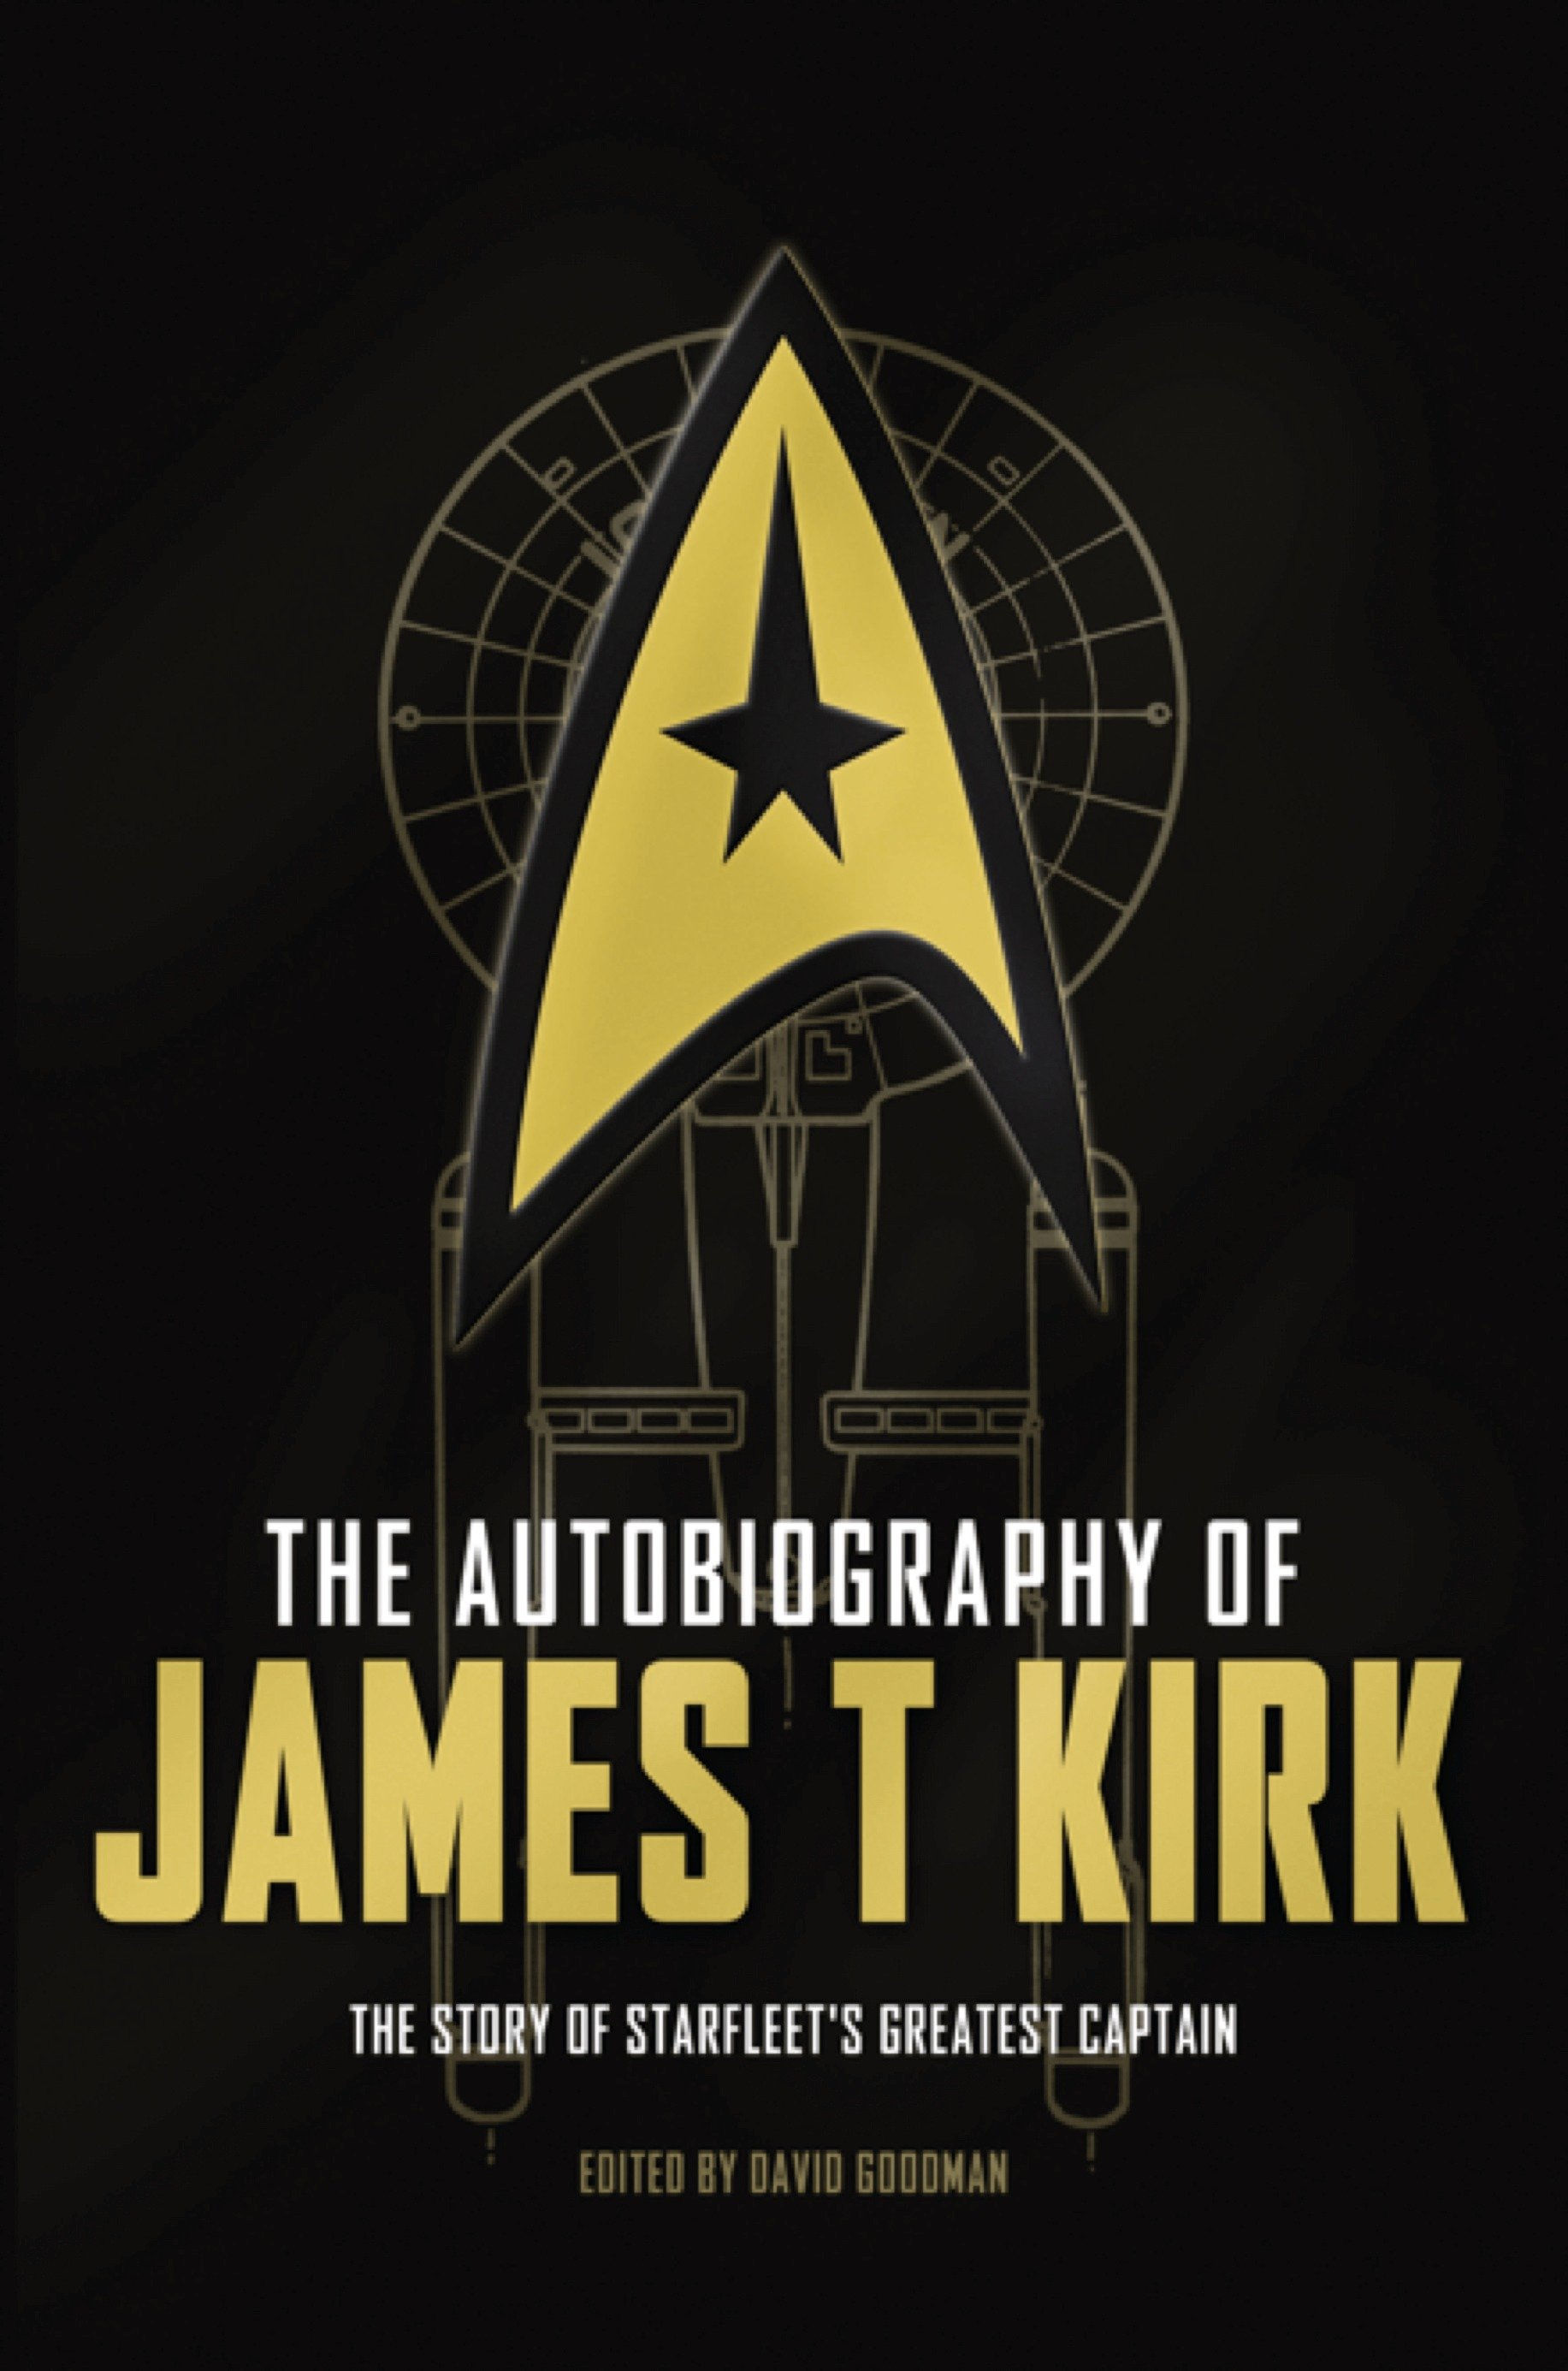 The Autobiography of James T. Kirk